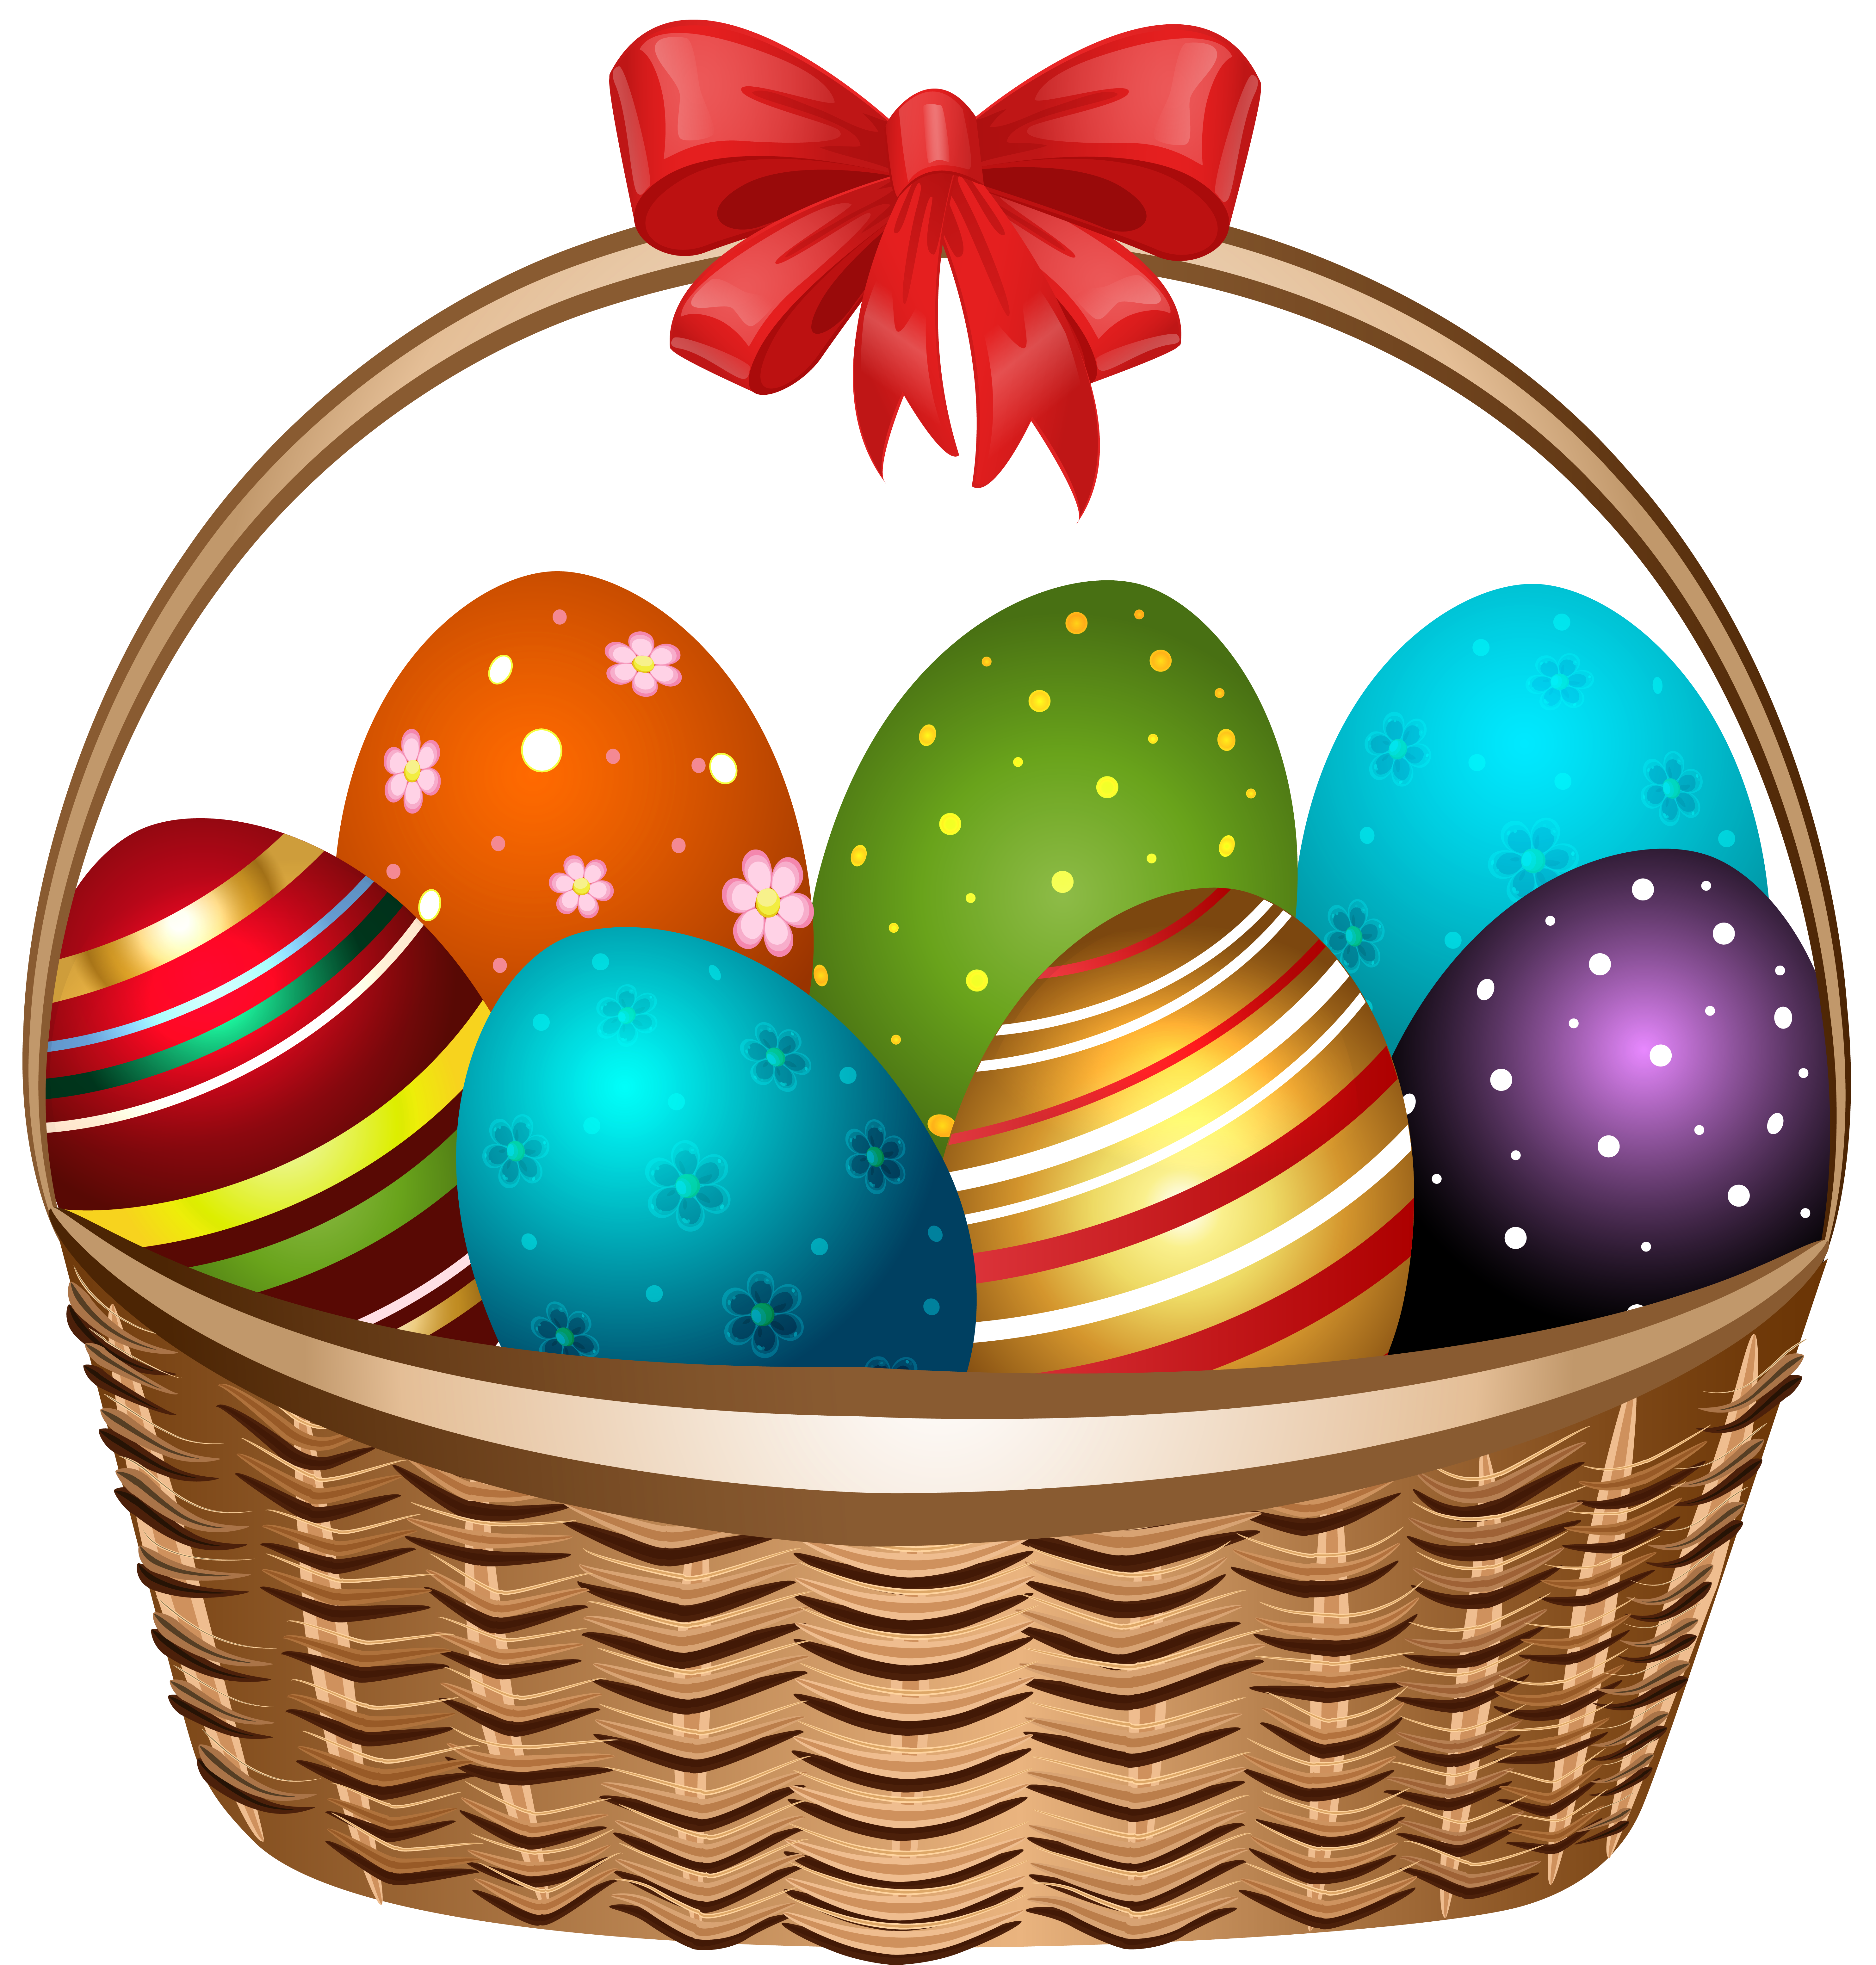 clip transparent stock Smartness design easter with. Basket clipart bow.